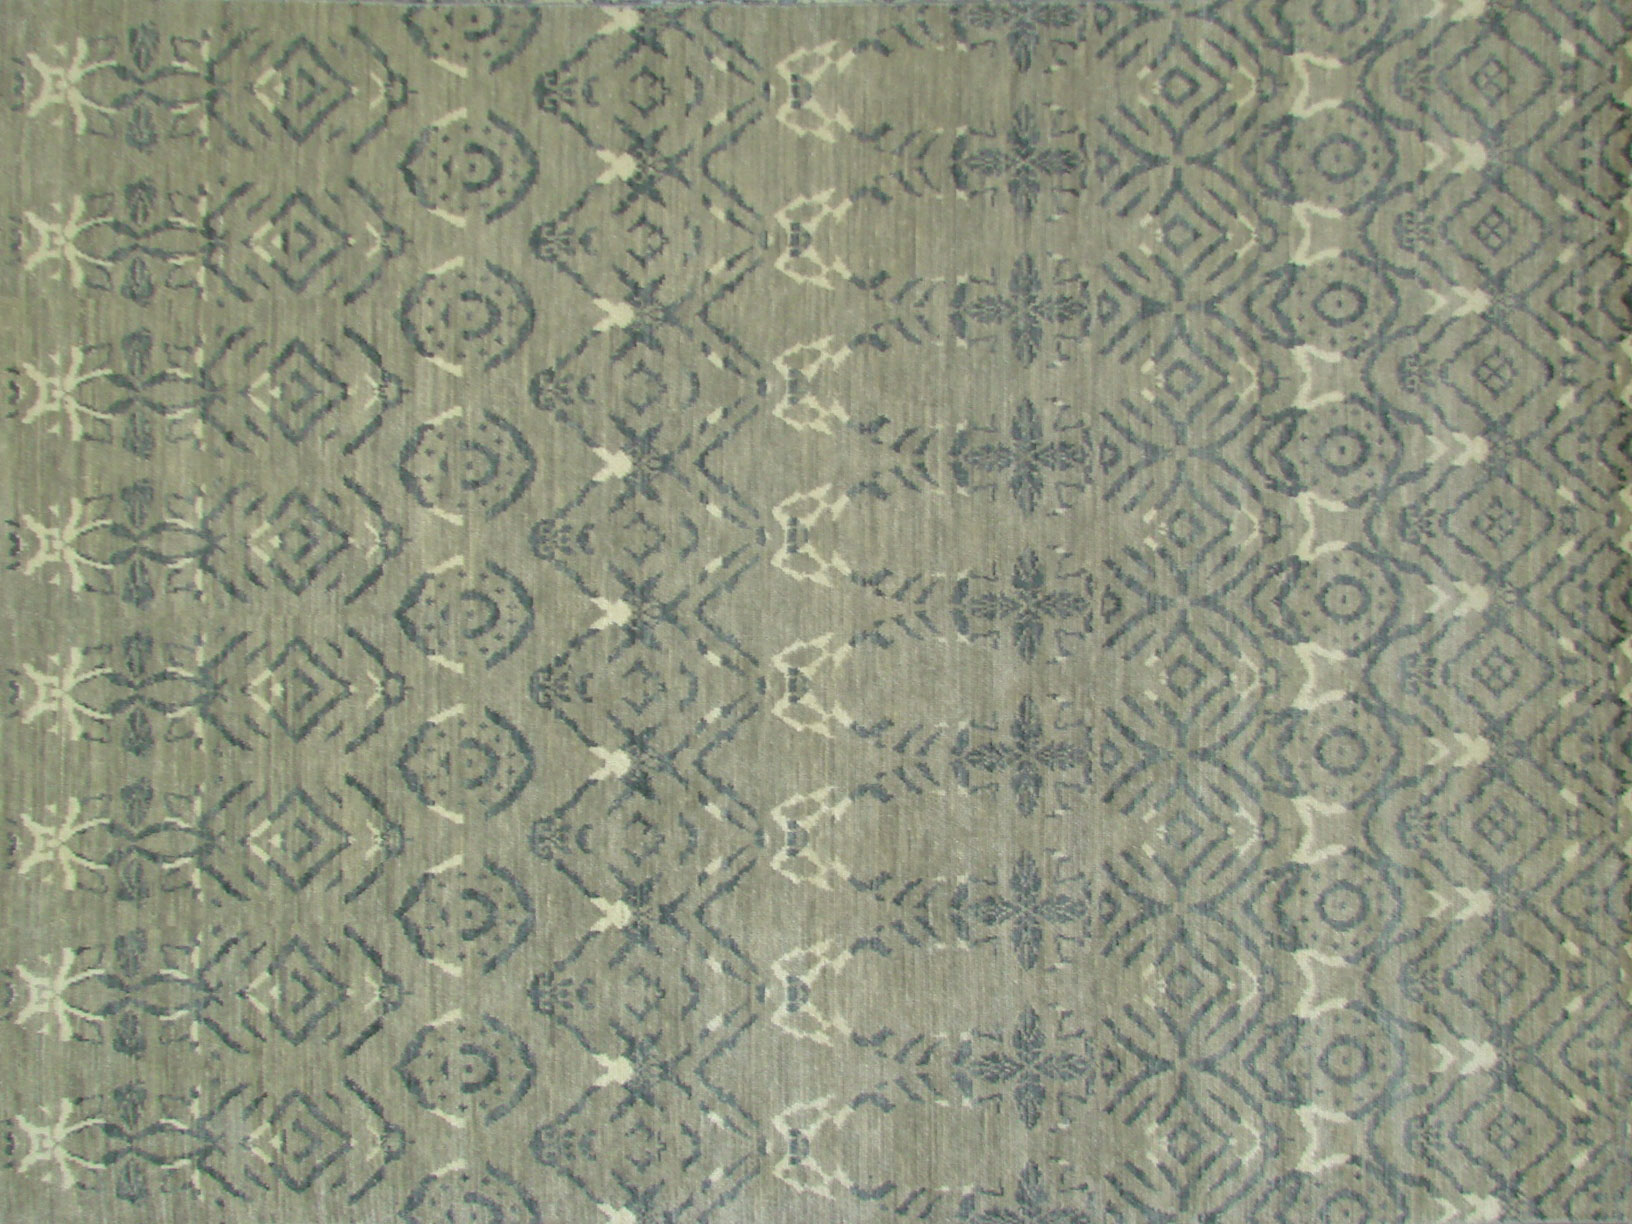 8x10 Contemporary Hand Knotted Wool Area Rug - MR18512